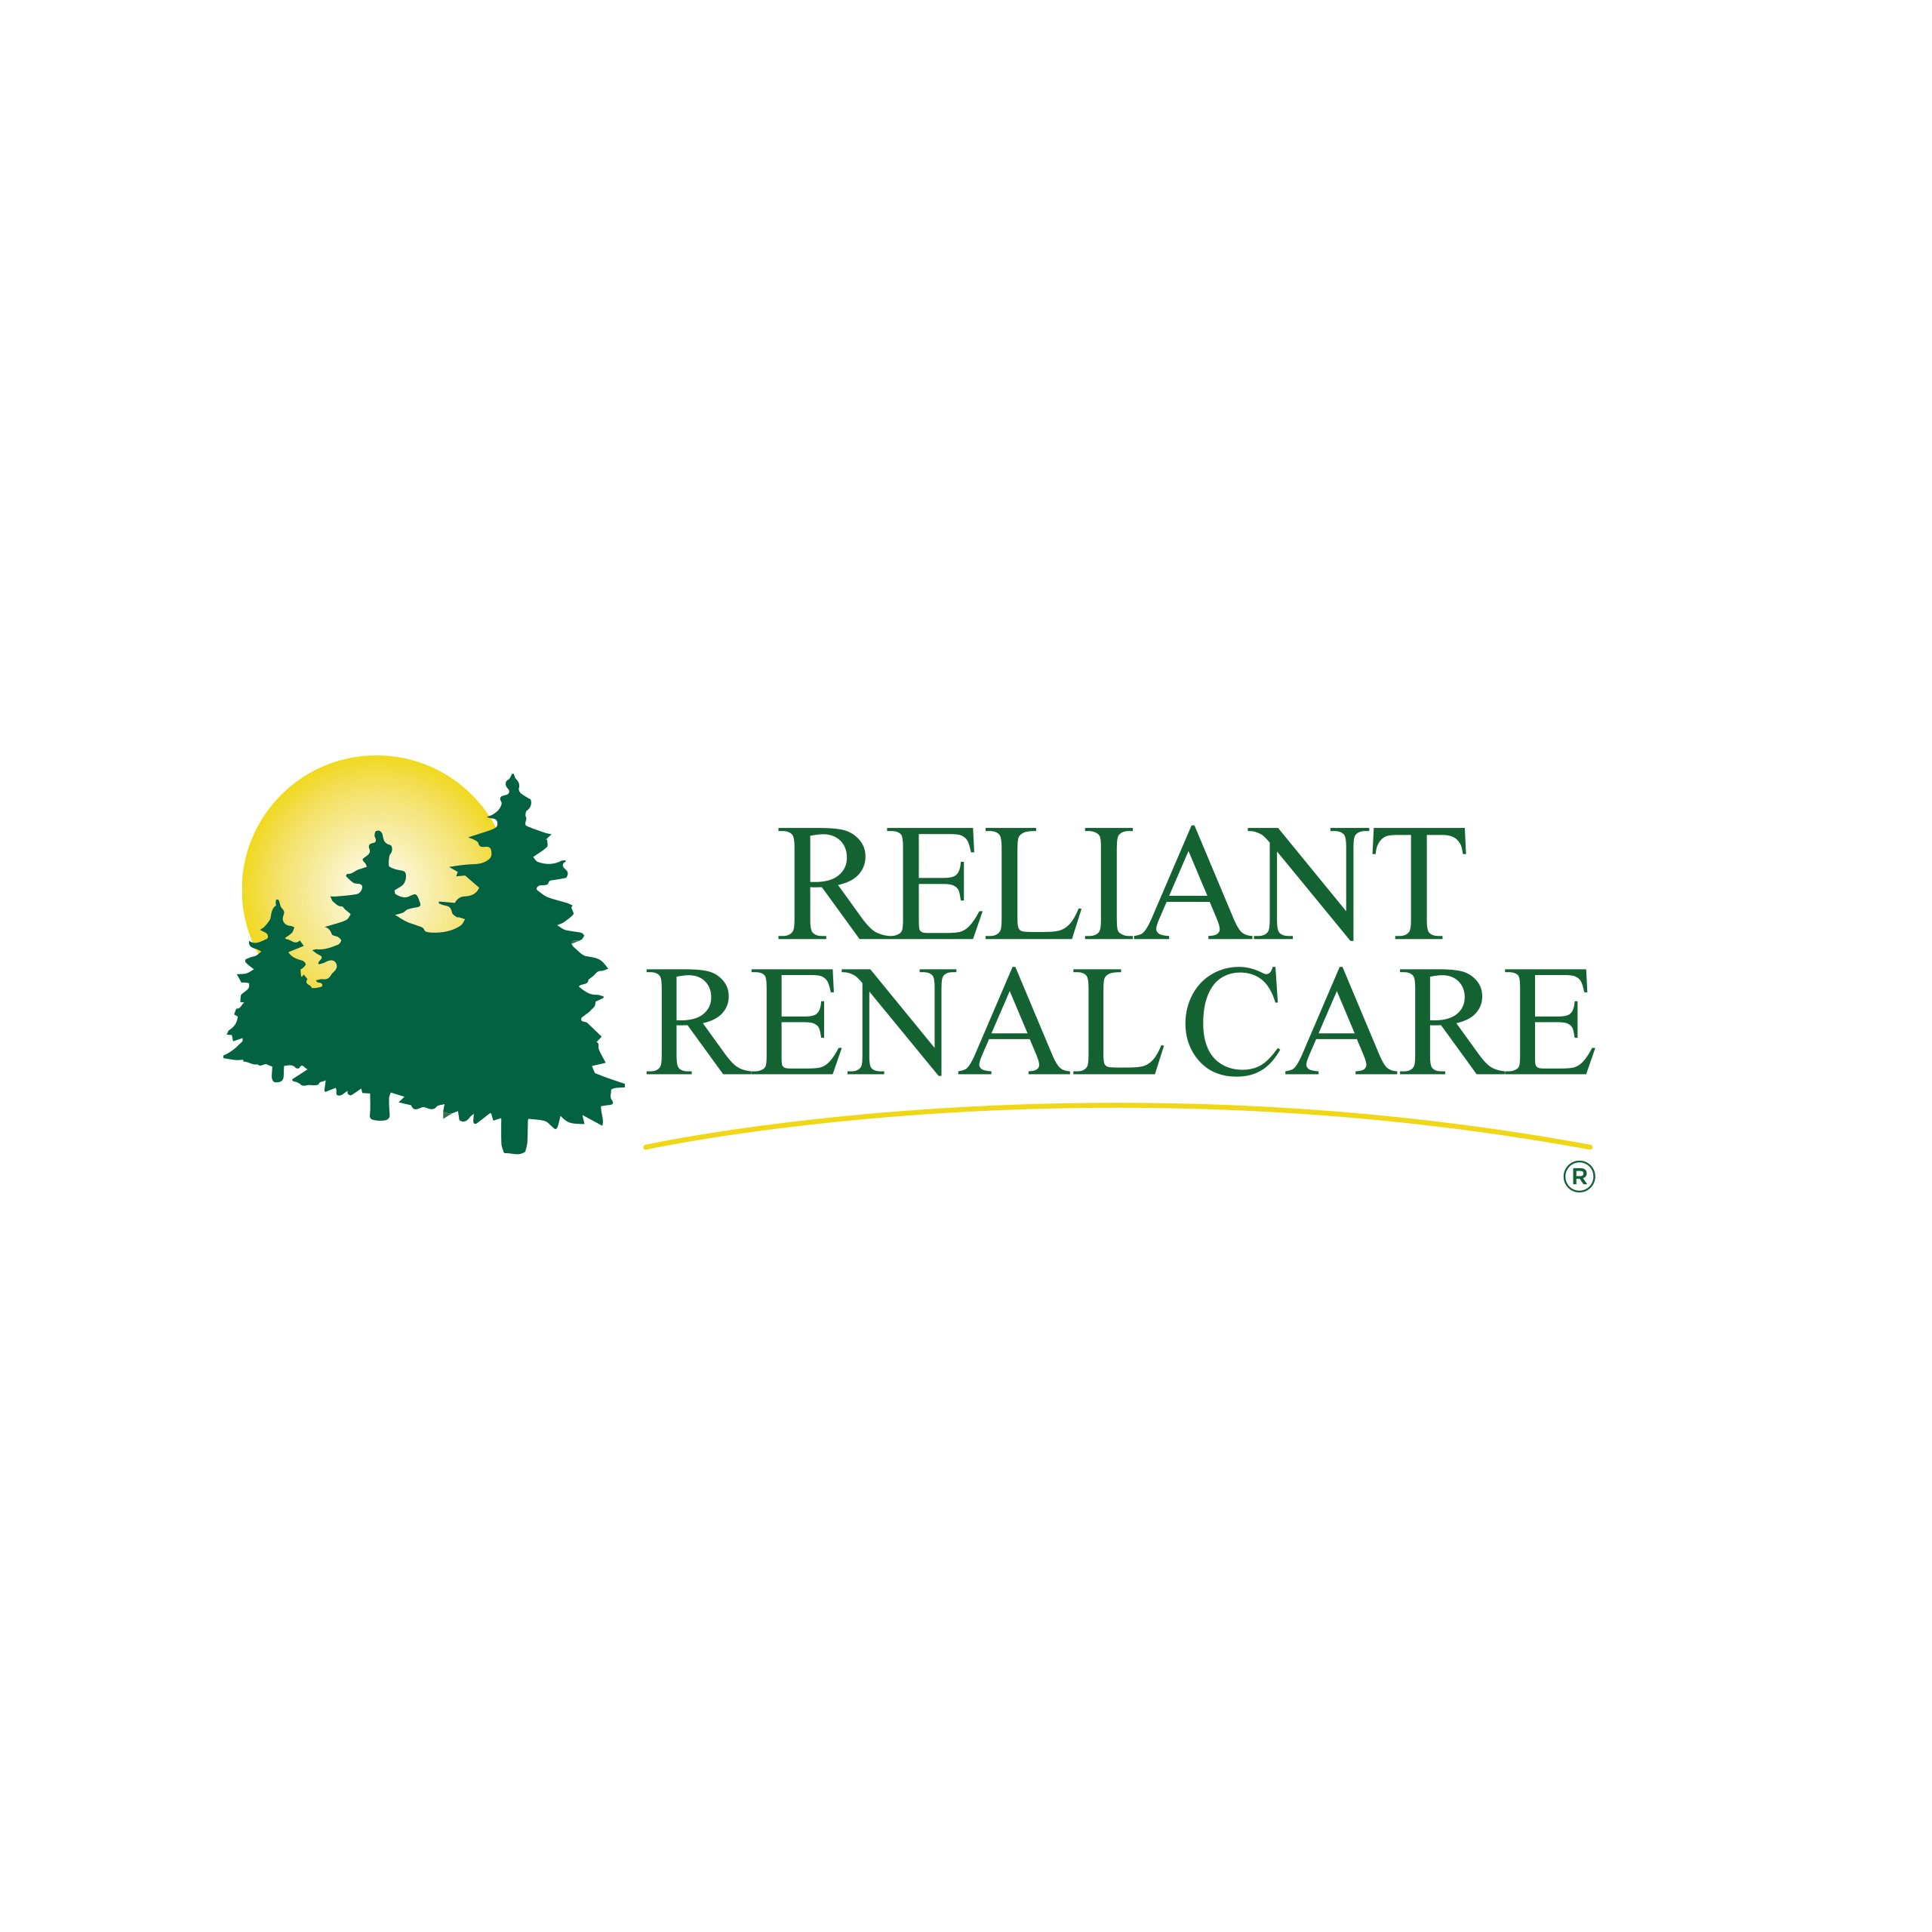 Reliant Renal Care: Cheltenham